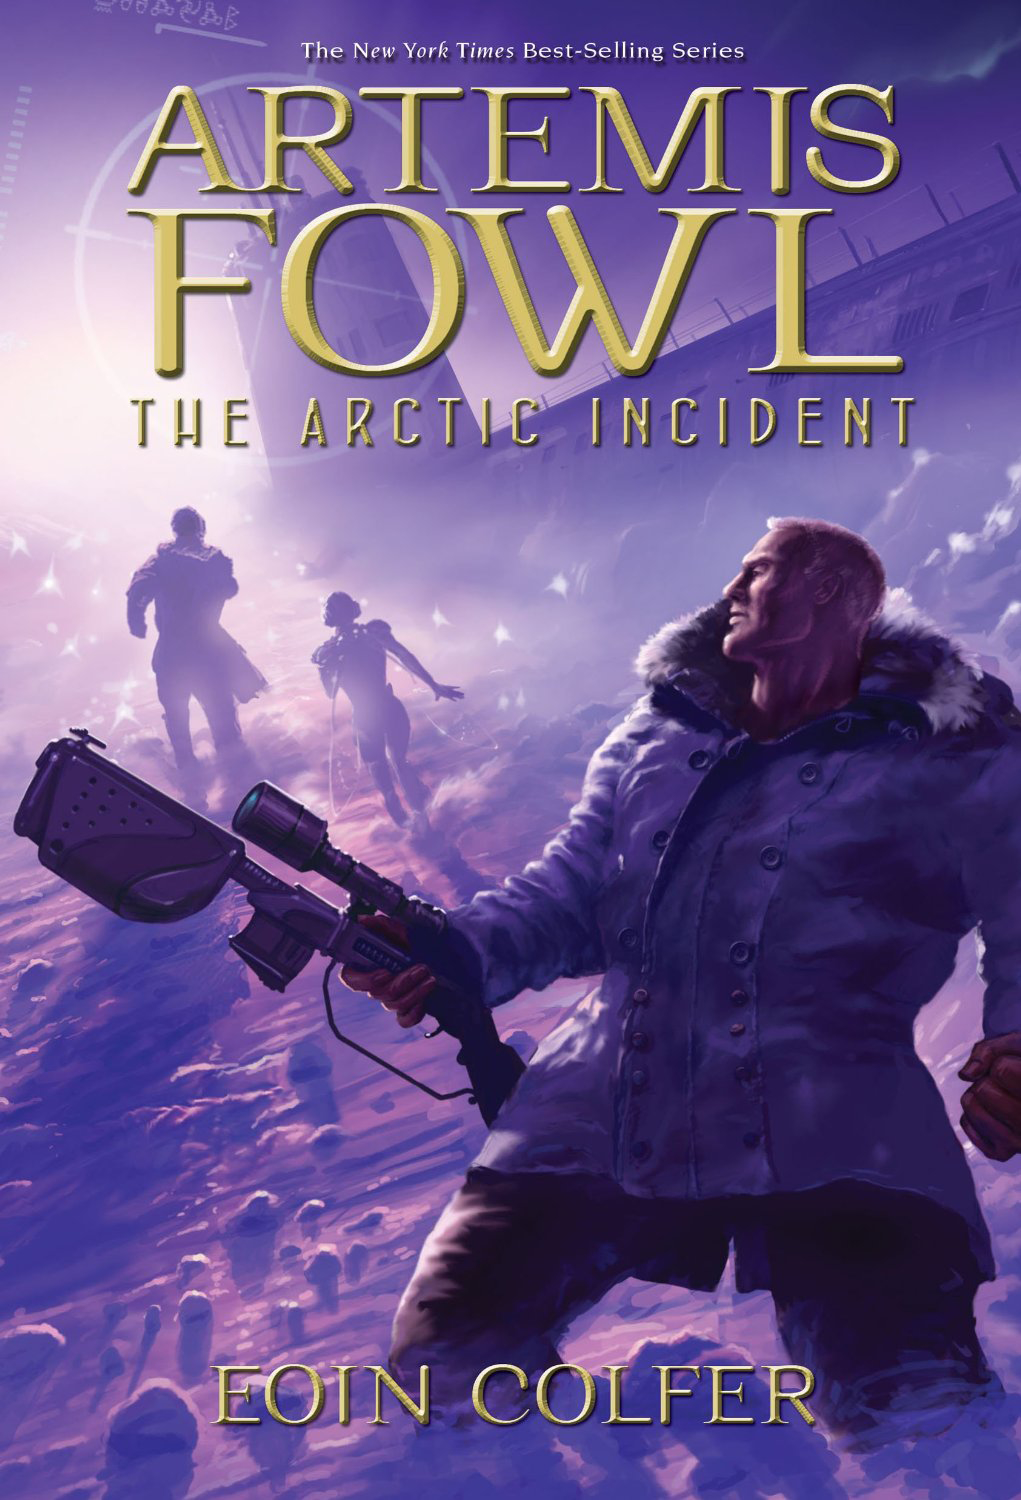 ARTEMIS FOWL GN VOL 02 ARCTIC INCIDENT (NEW PTG)